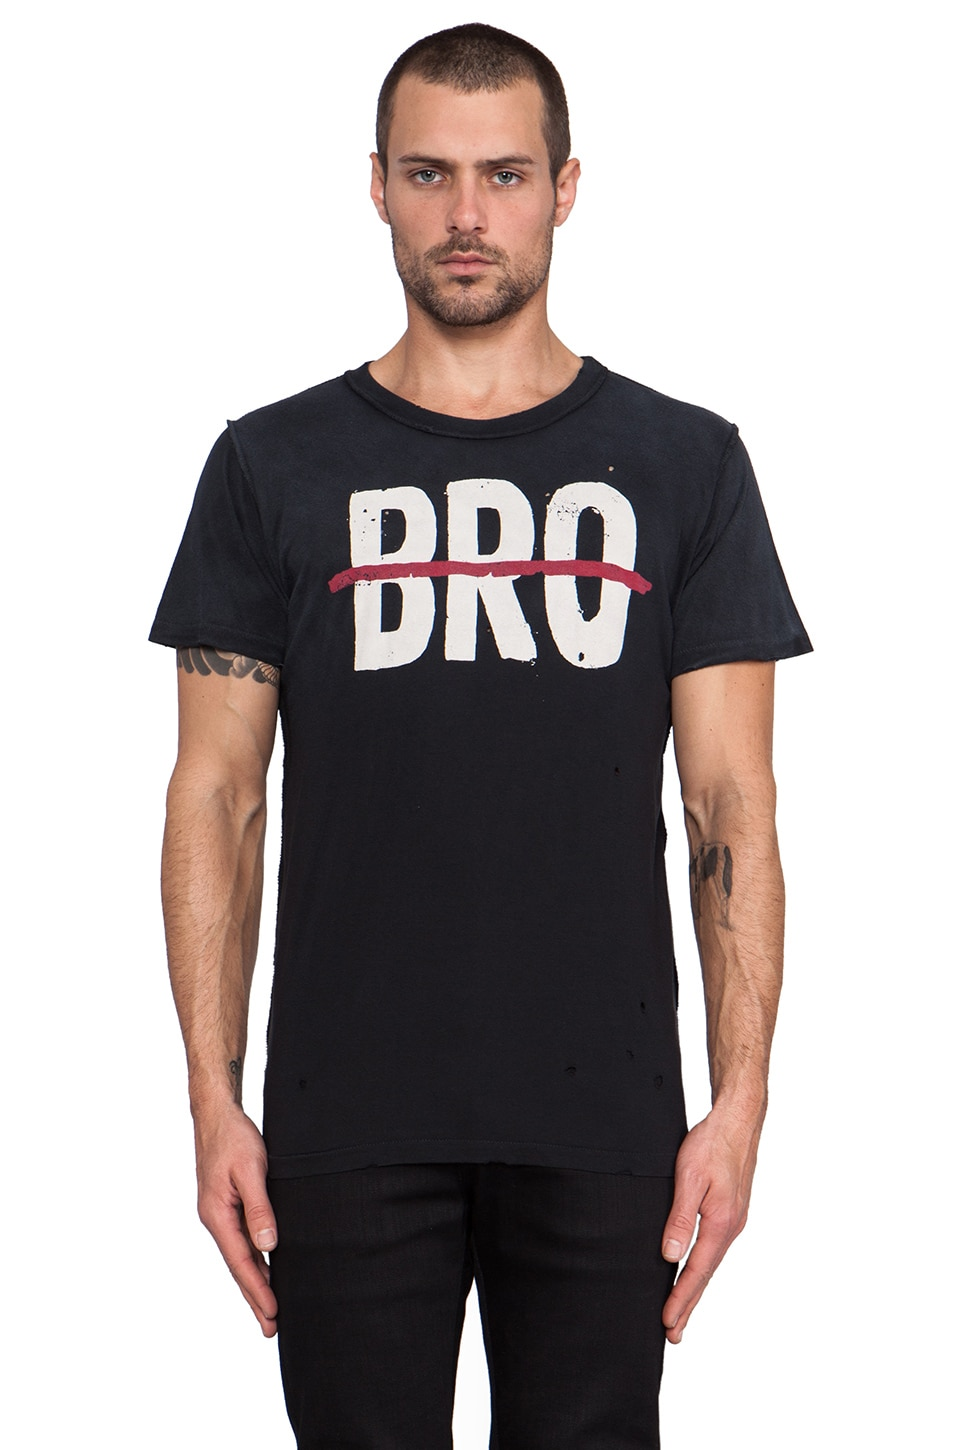 UNIF No Bro Tee in Black